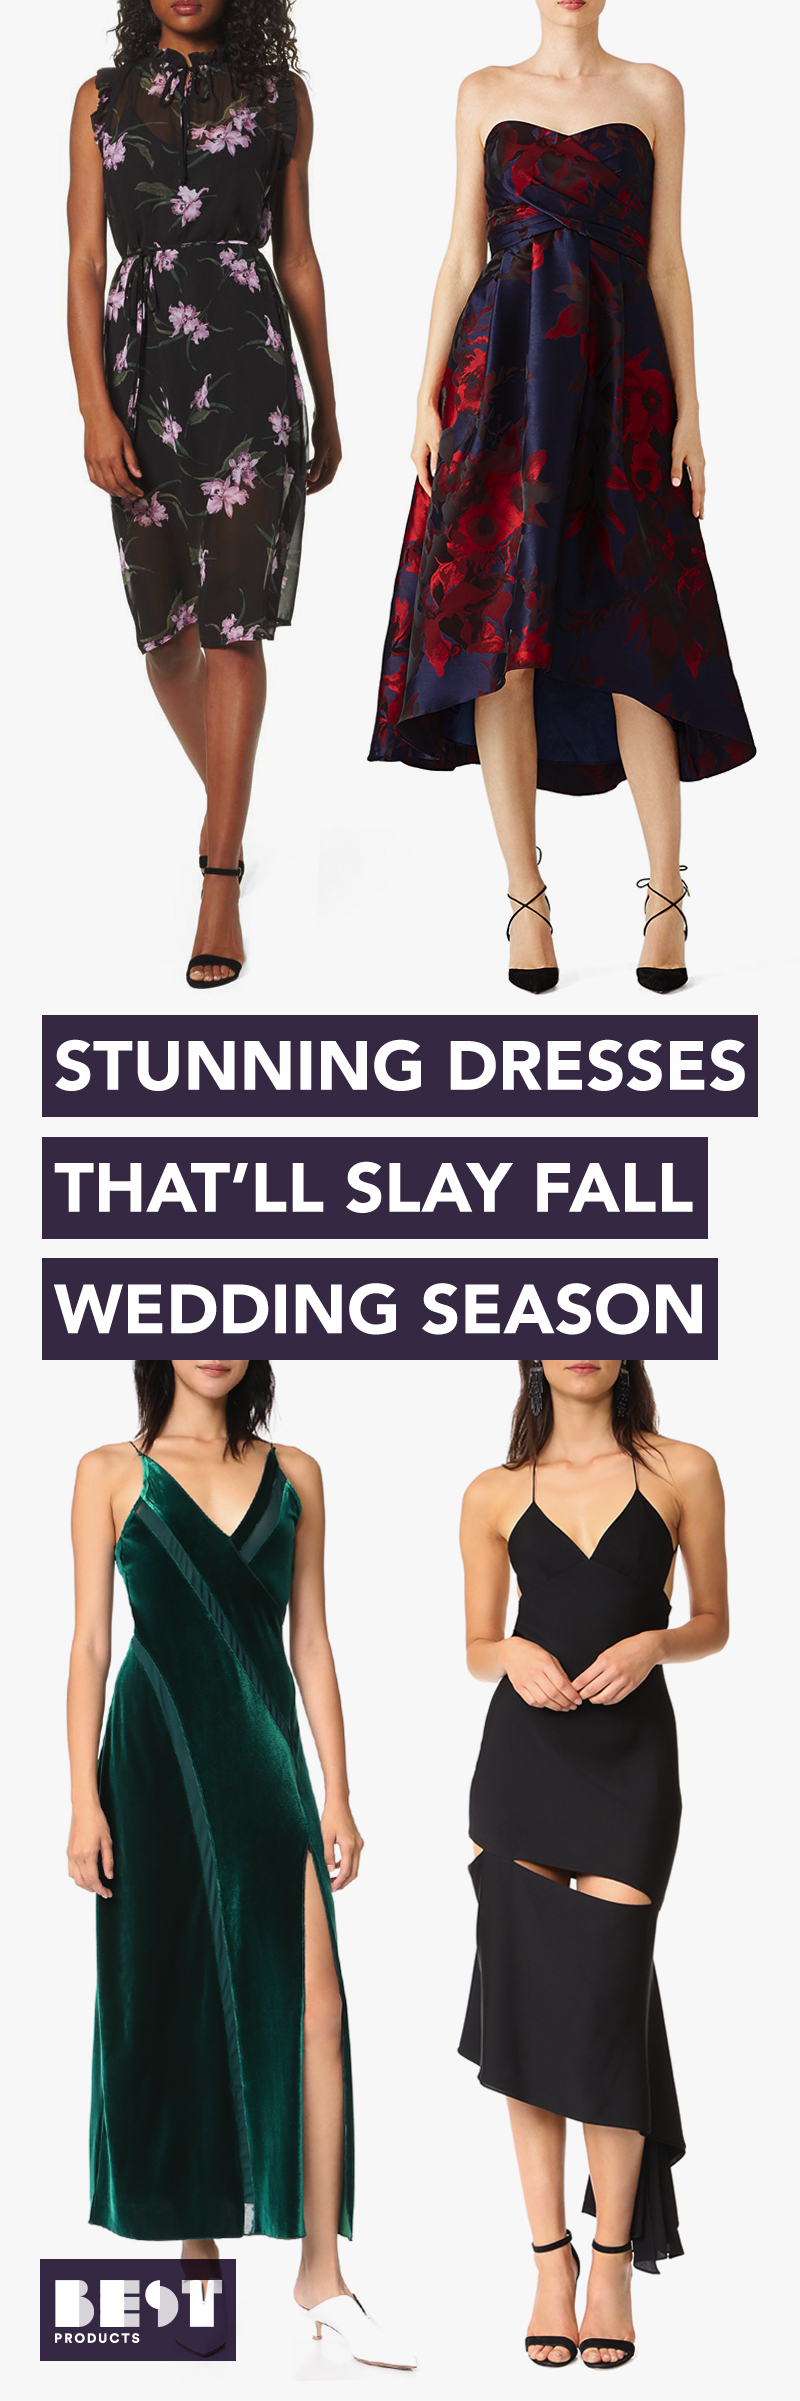 12 Best Wedding Guest Dresses For Winter 2018